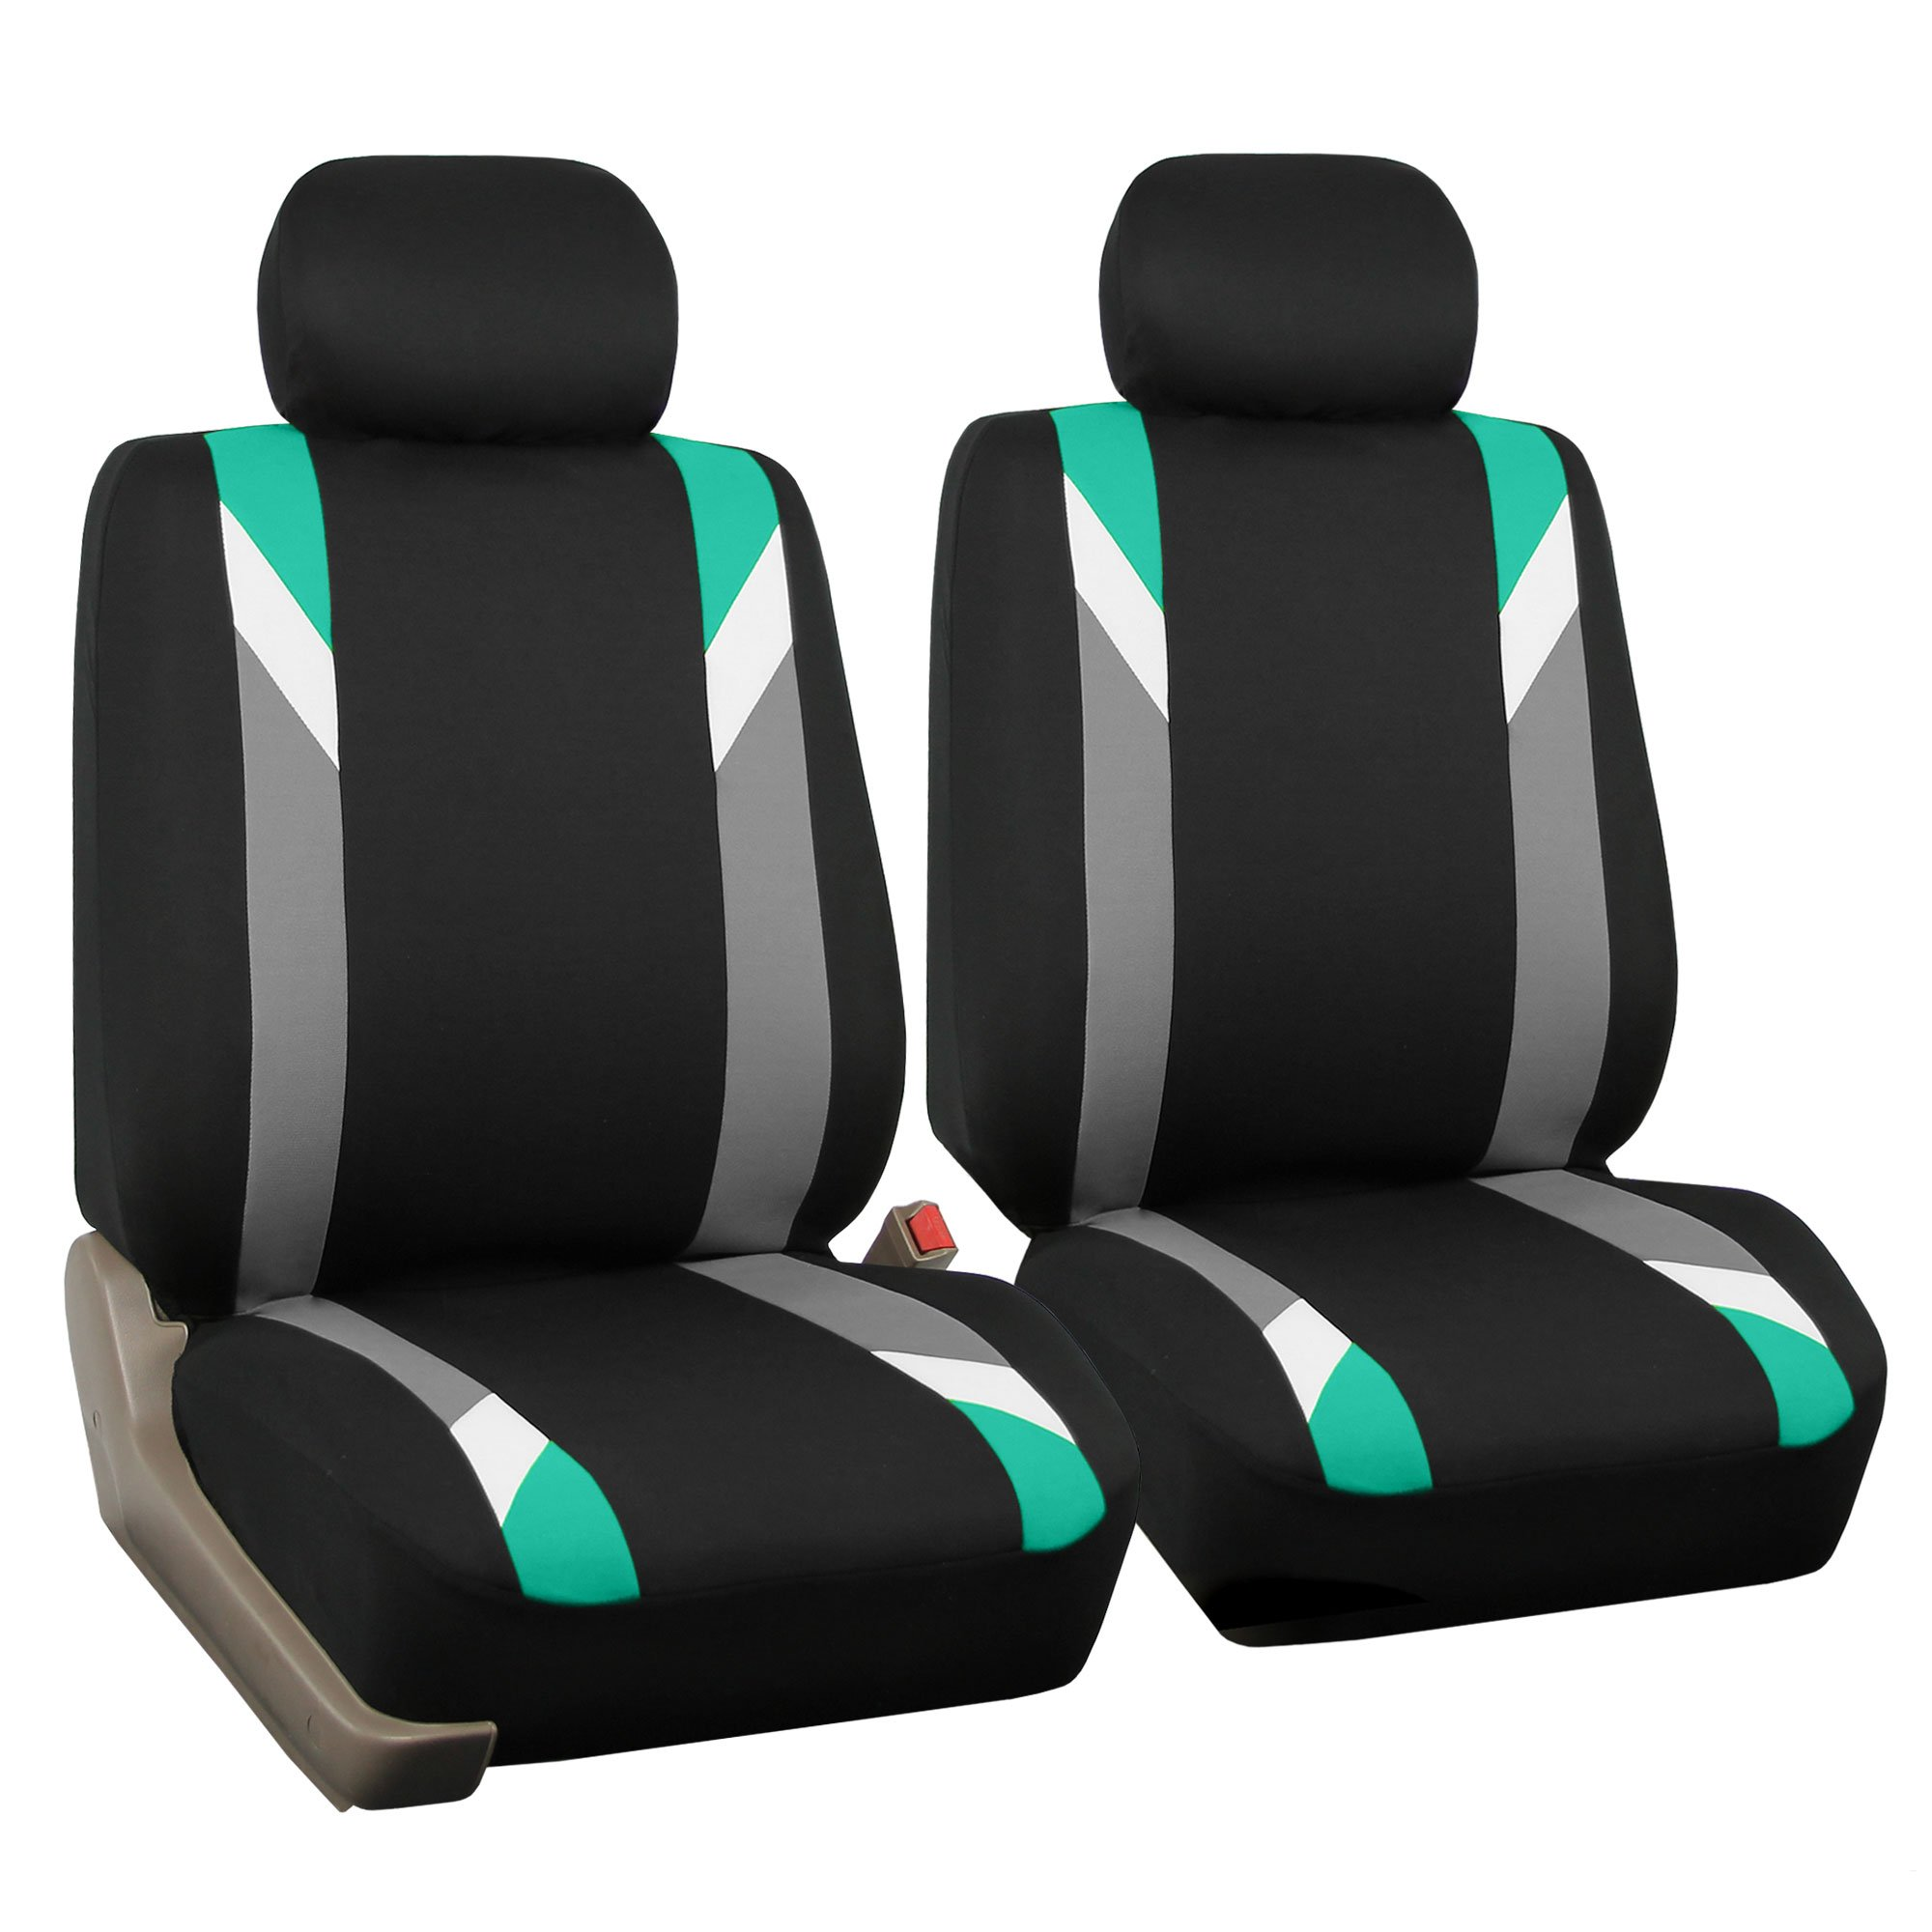 FH Group FB033MINT102 Modernistic Mint Bucket Seat Covers Set of 2 by FH Group